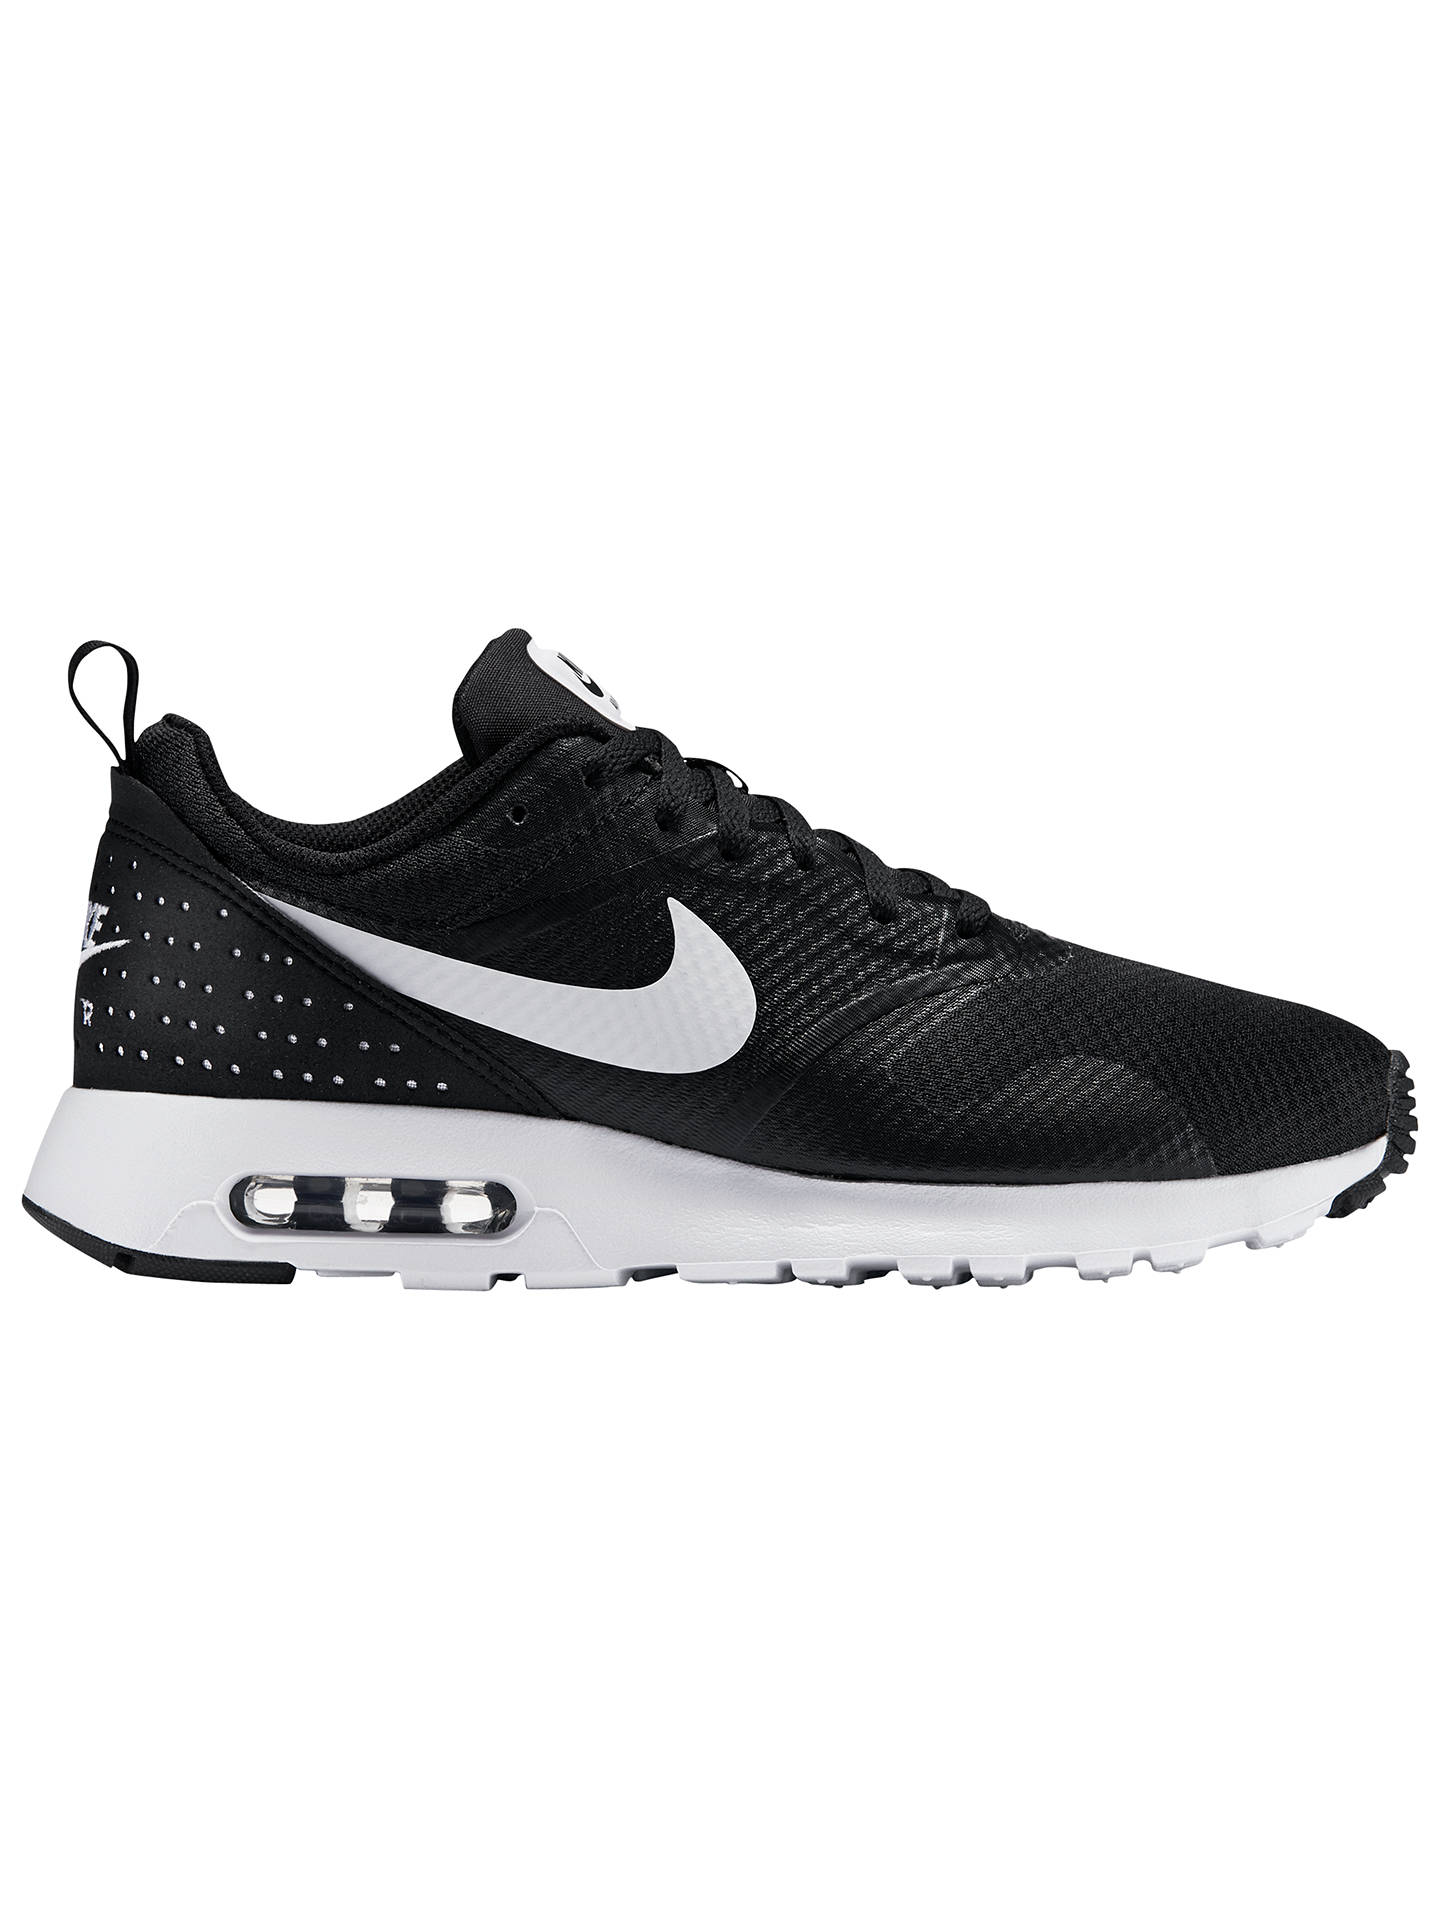 c5c7ee3bb27f ... sweden buynike air max tavas mens trainers black white 7 online at  johnlewis. 3c59c b8511 sweden nike ...